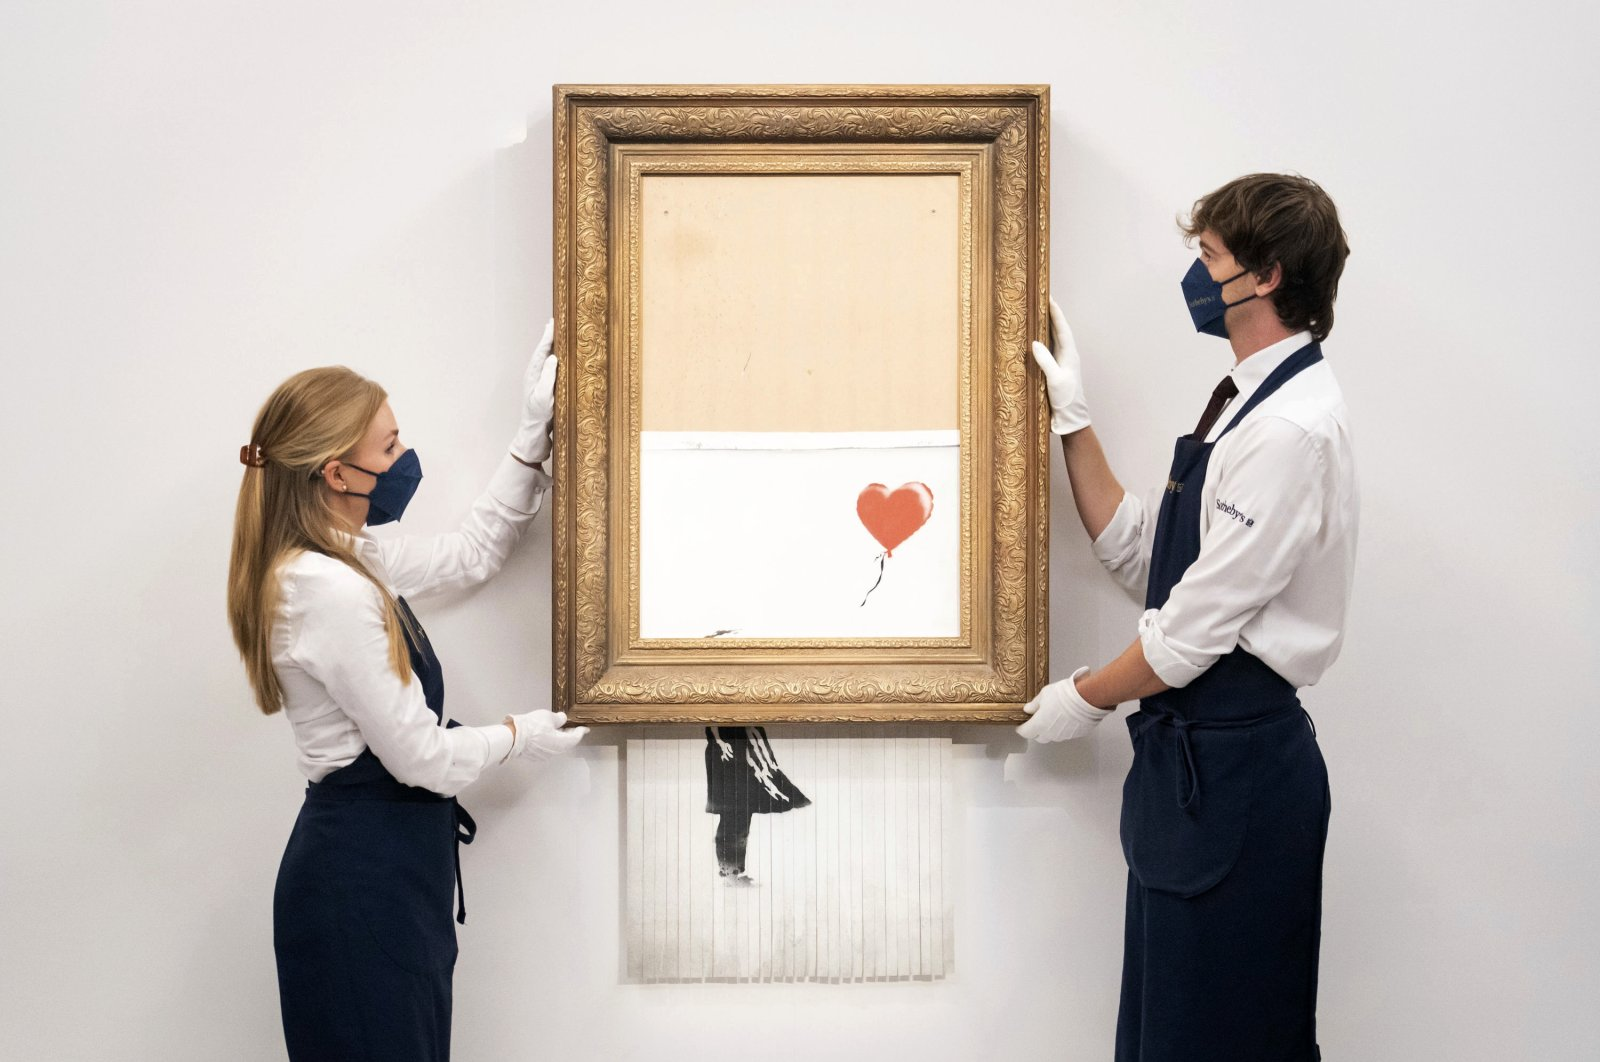 """Art handlers at Sotheby's auction house hold Banksy's """"Love is in the Bin,"""" before it returns to auction at Sotheby's, London, U.K., Sept. 3, 2021. (AP Photo)"""